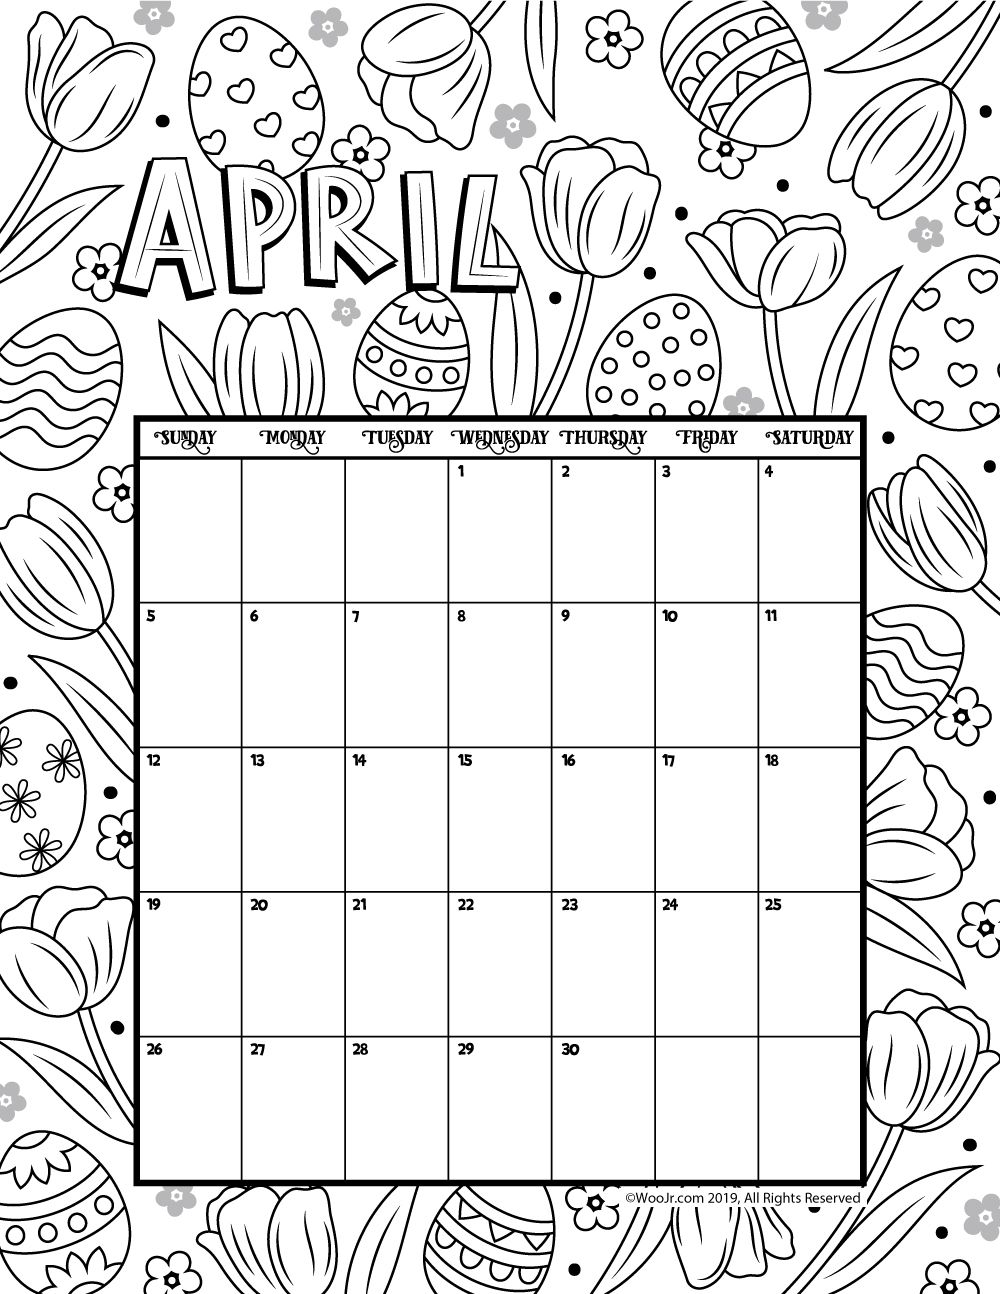 April 2020 Coloring Calendar in 2020 Coloring calendar